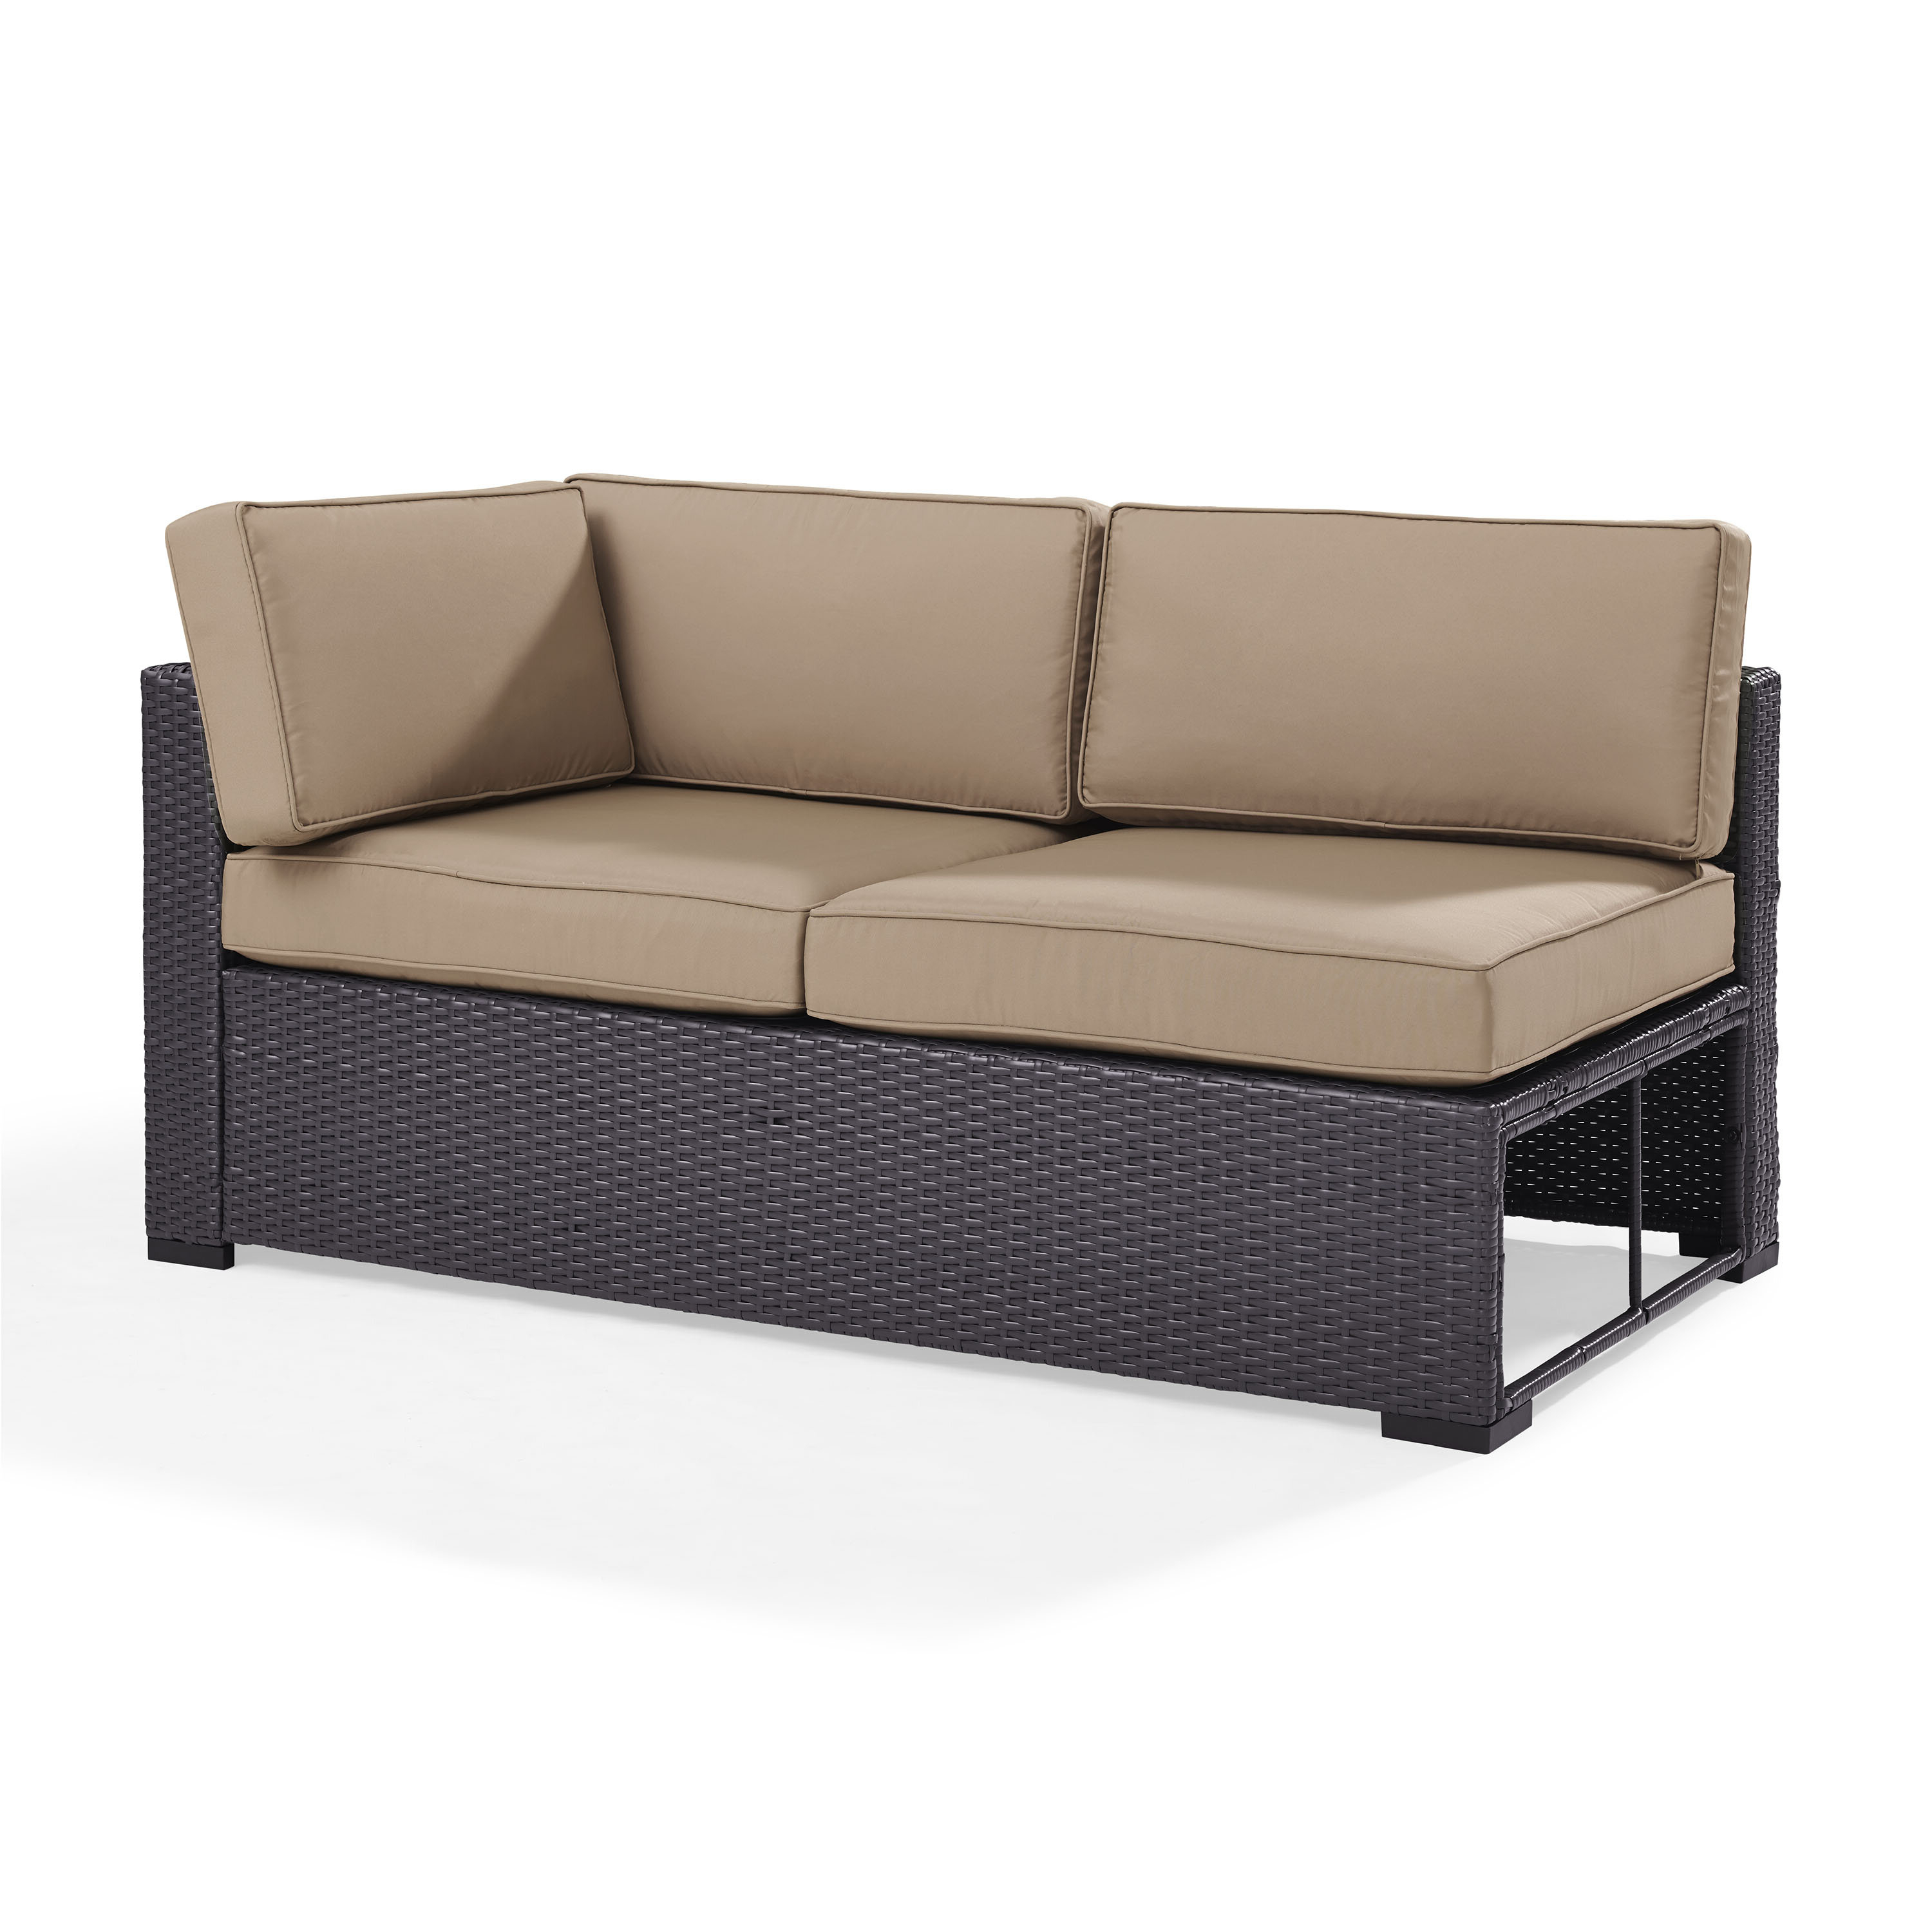 Dinah Loveseat With Cushions Within Fashionable Mendelson Loveseats With Cushion (View 4 of 20)